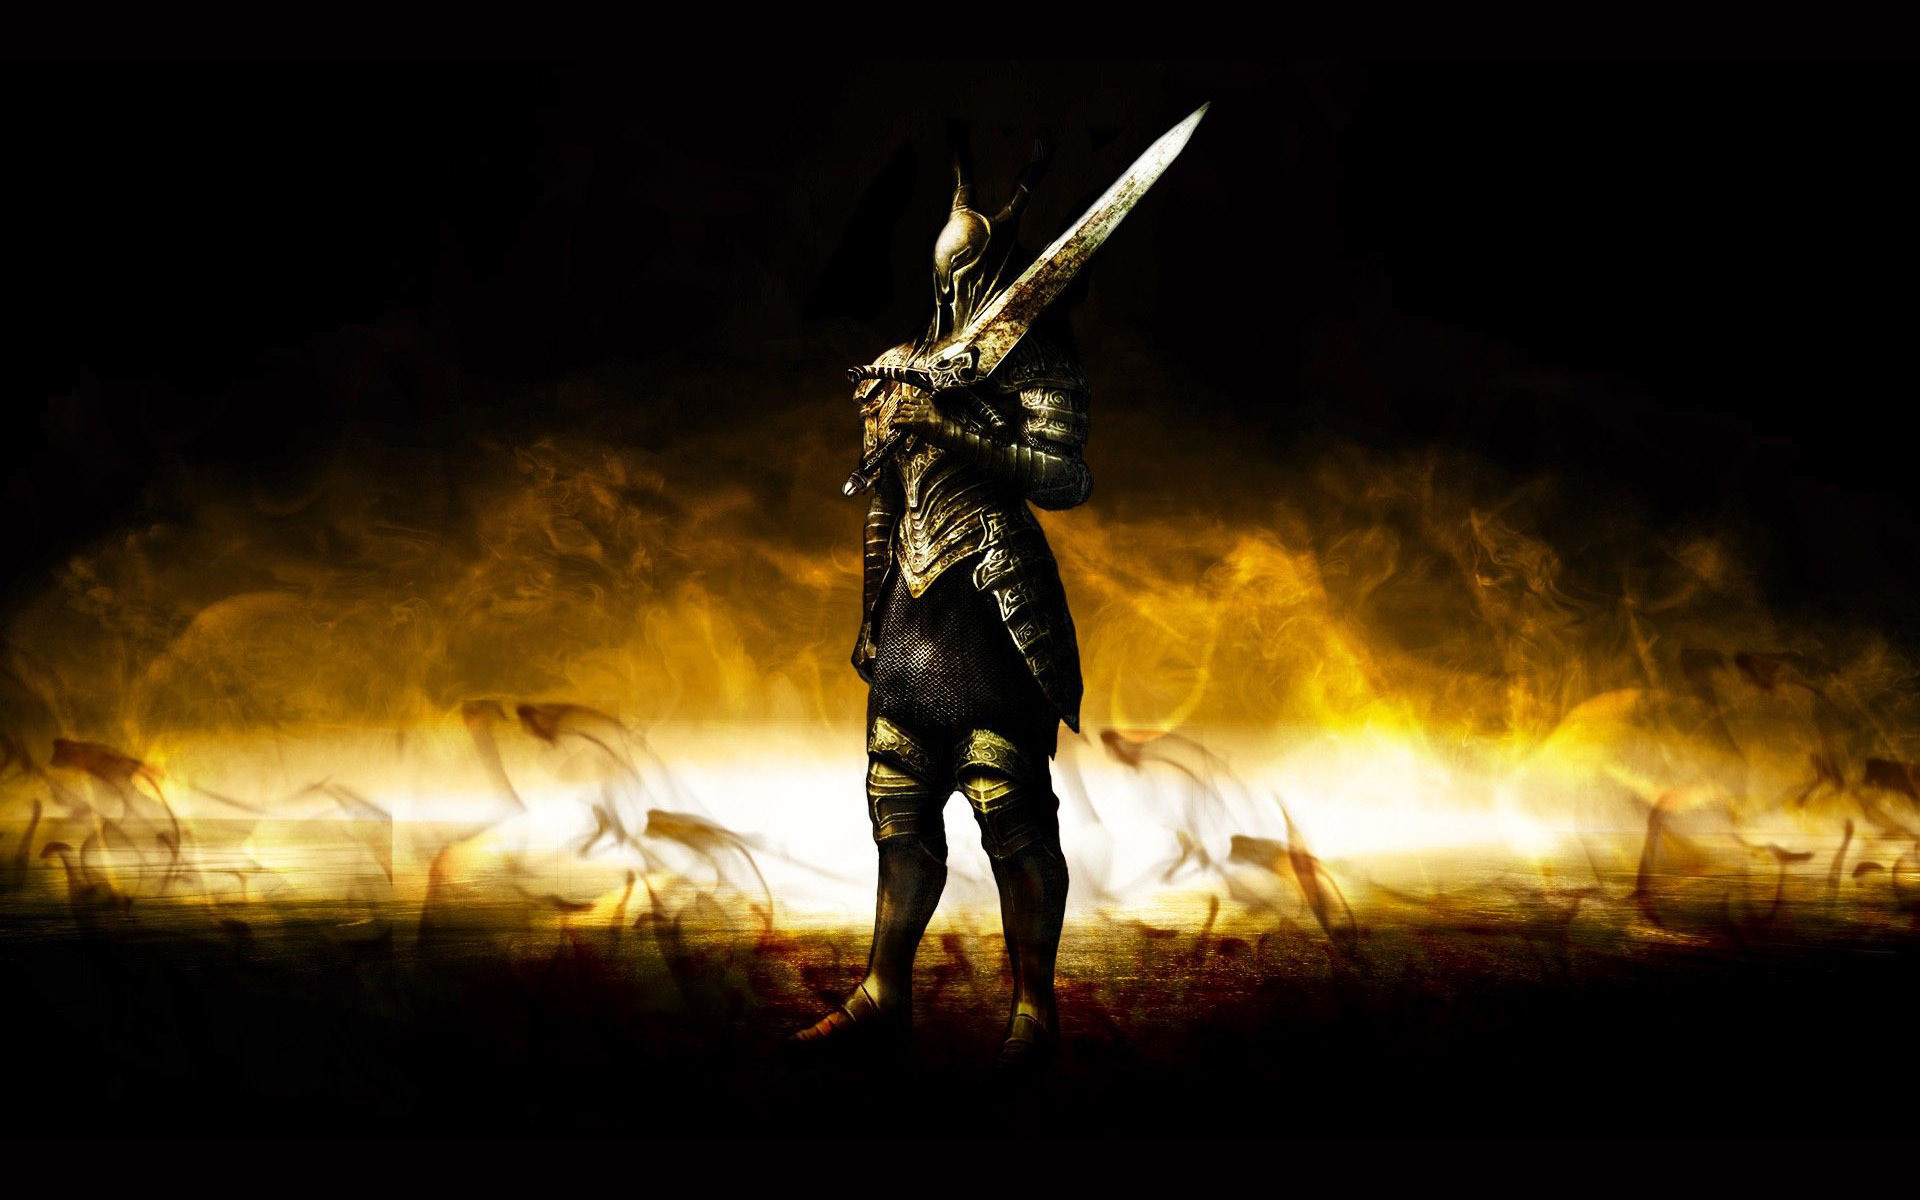 1920x1200 Backgrounds for Gt Dark Souls Bonfire Iphone Wallpaper px